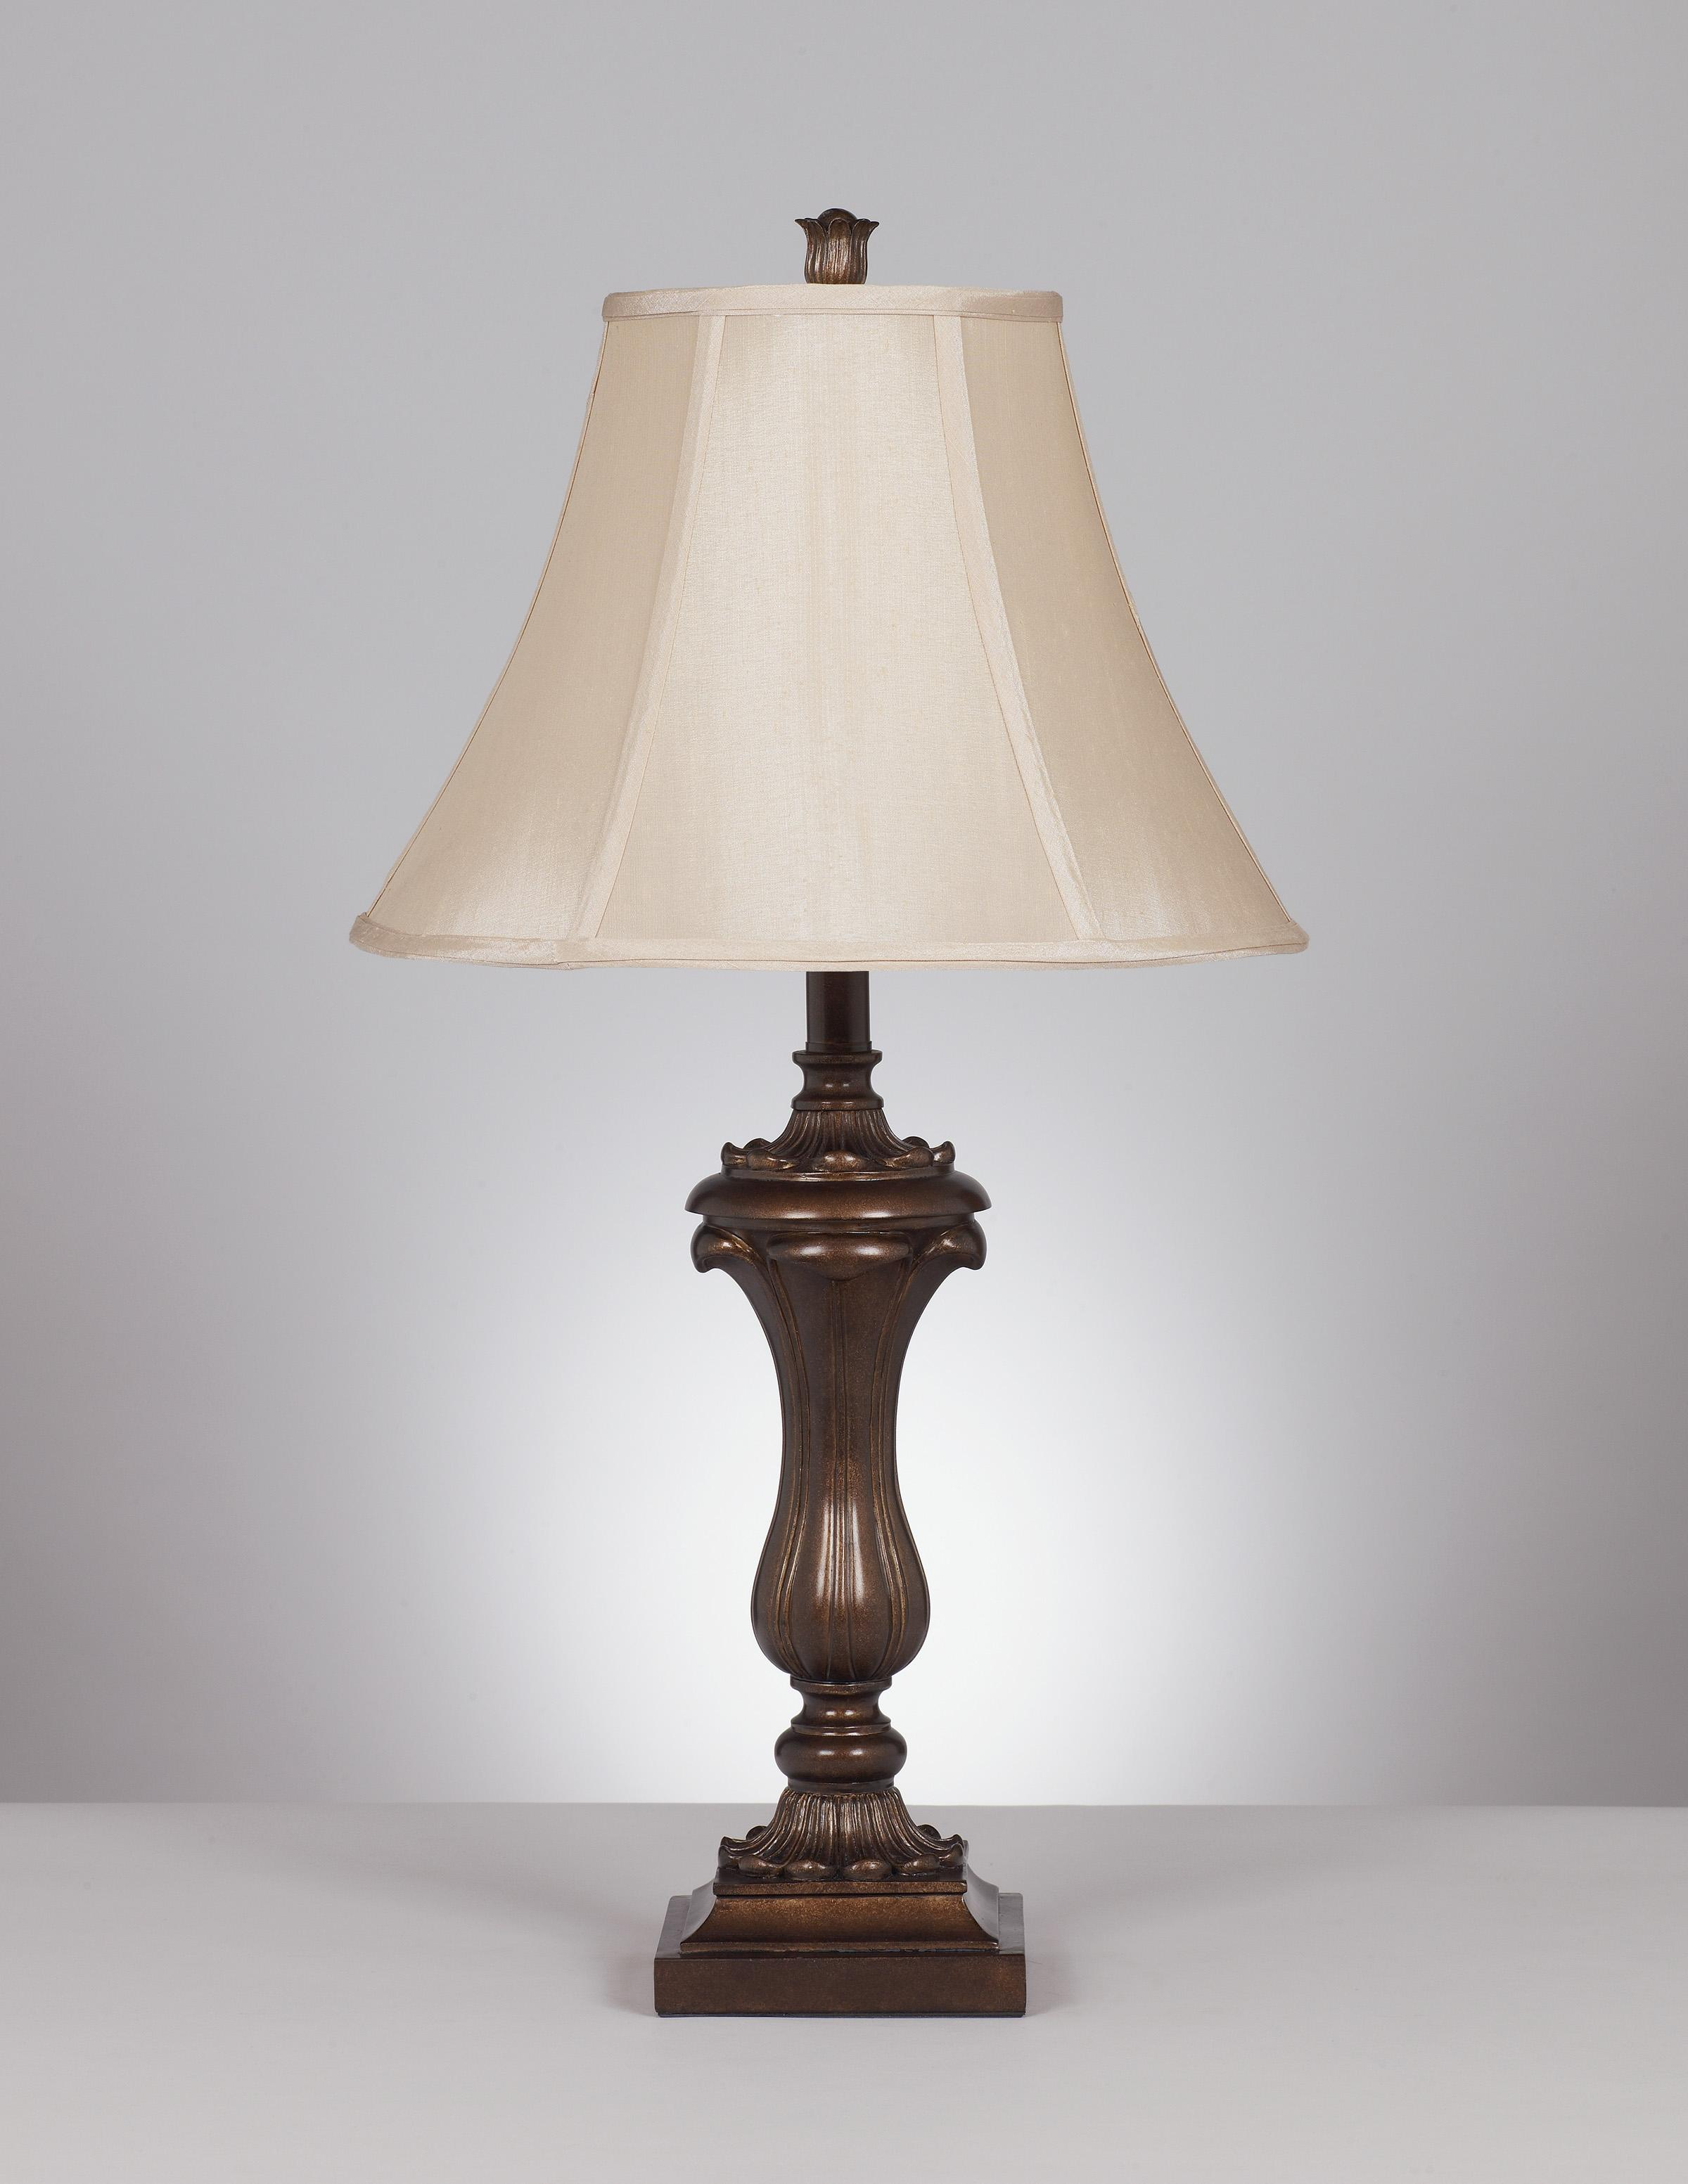 Signature Design by Ashley Lamps - Traditional Classics Set of 2 Mabel Table Lamps - Item Number: L369934